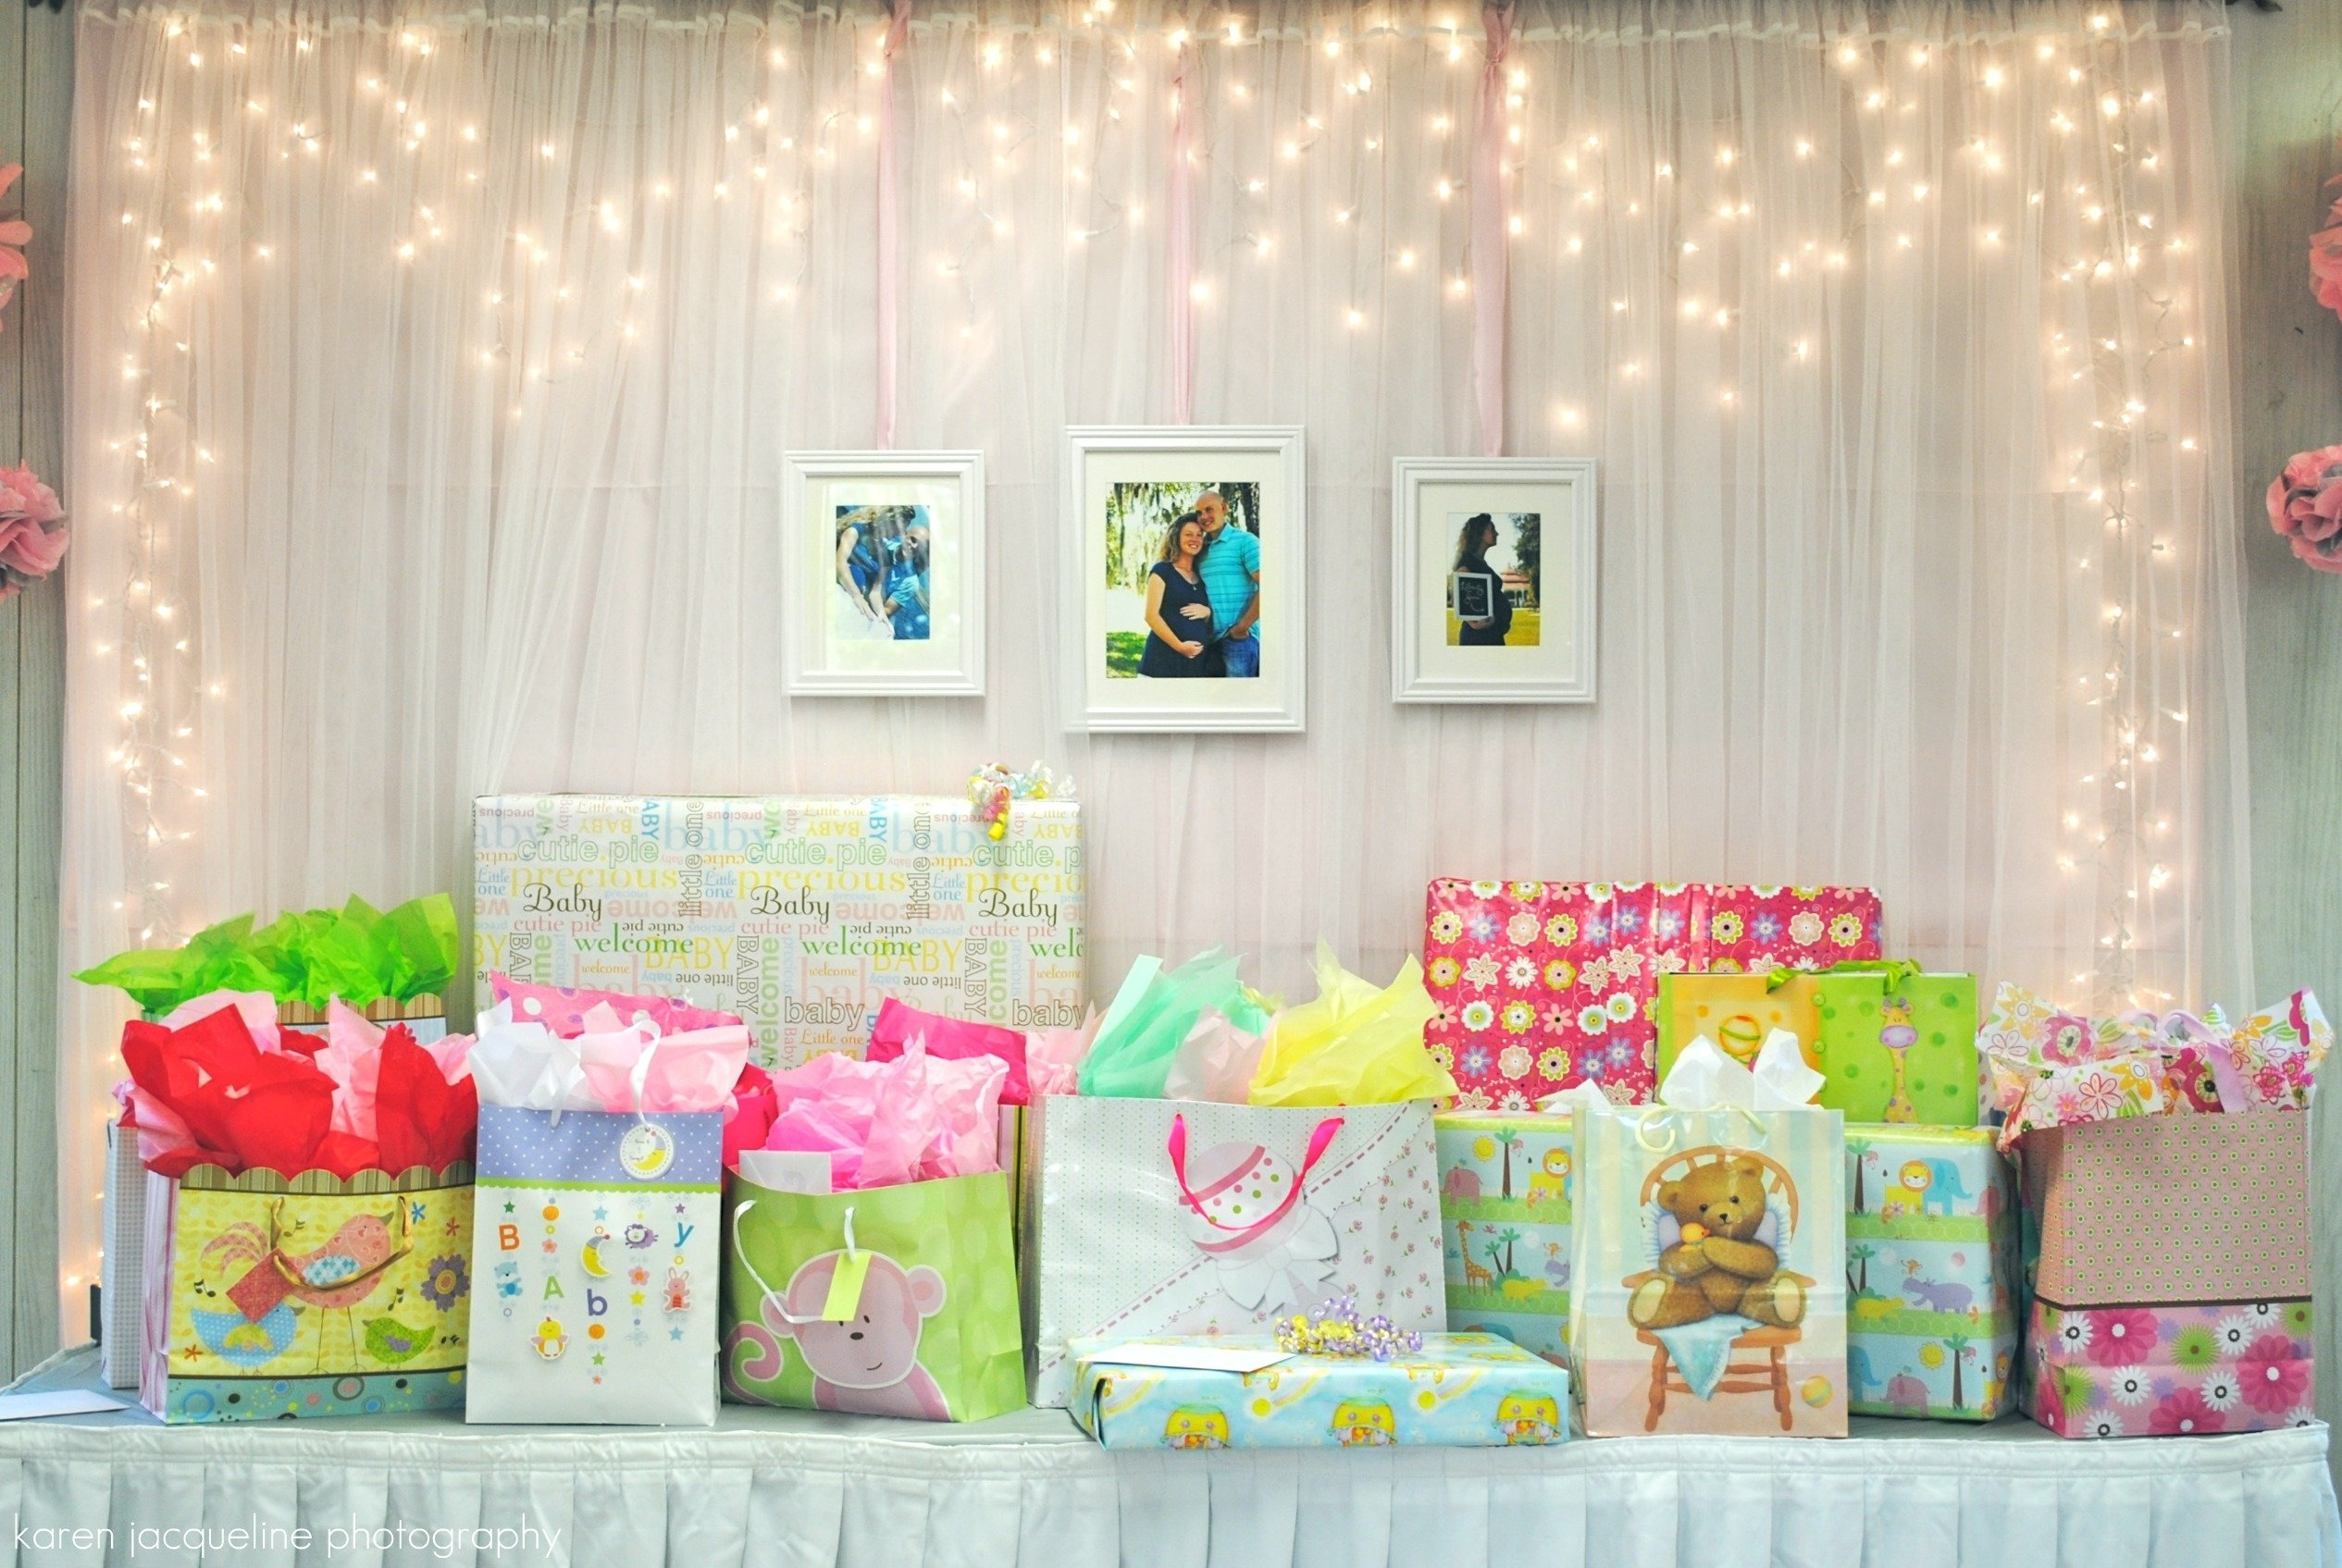 10 Fashionable Baby Shower Gift Table Ideas decorating ideas for baby shower gift table e280a2 baby showers ideas 2020